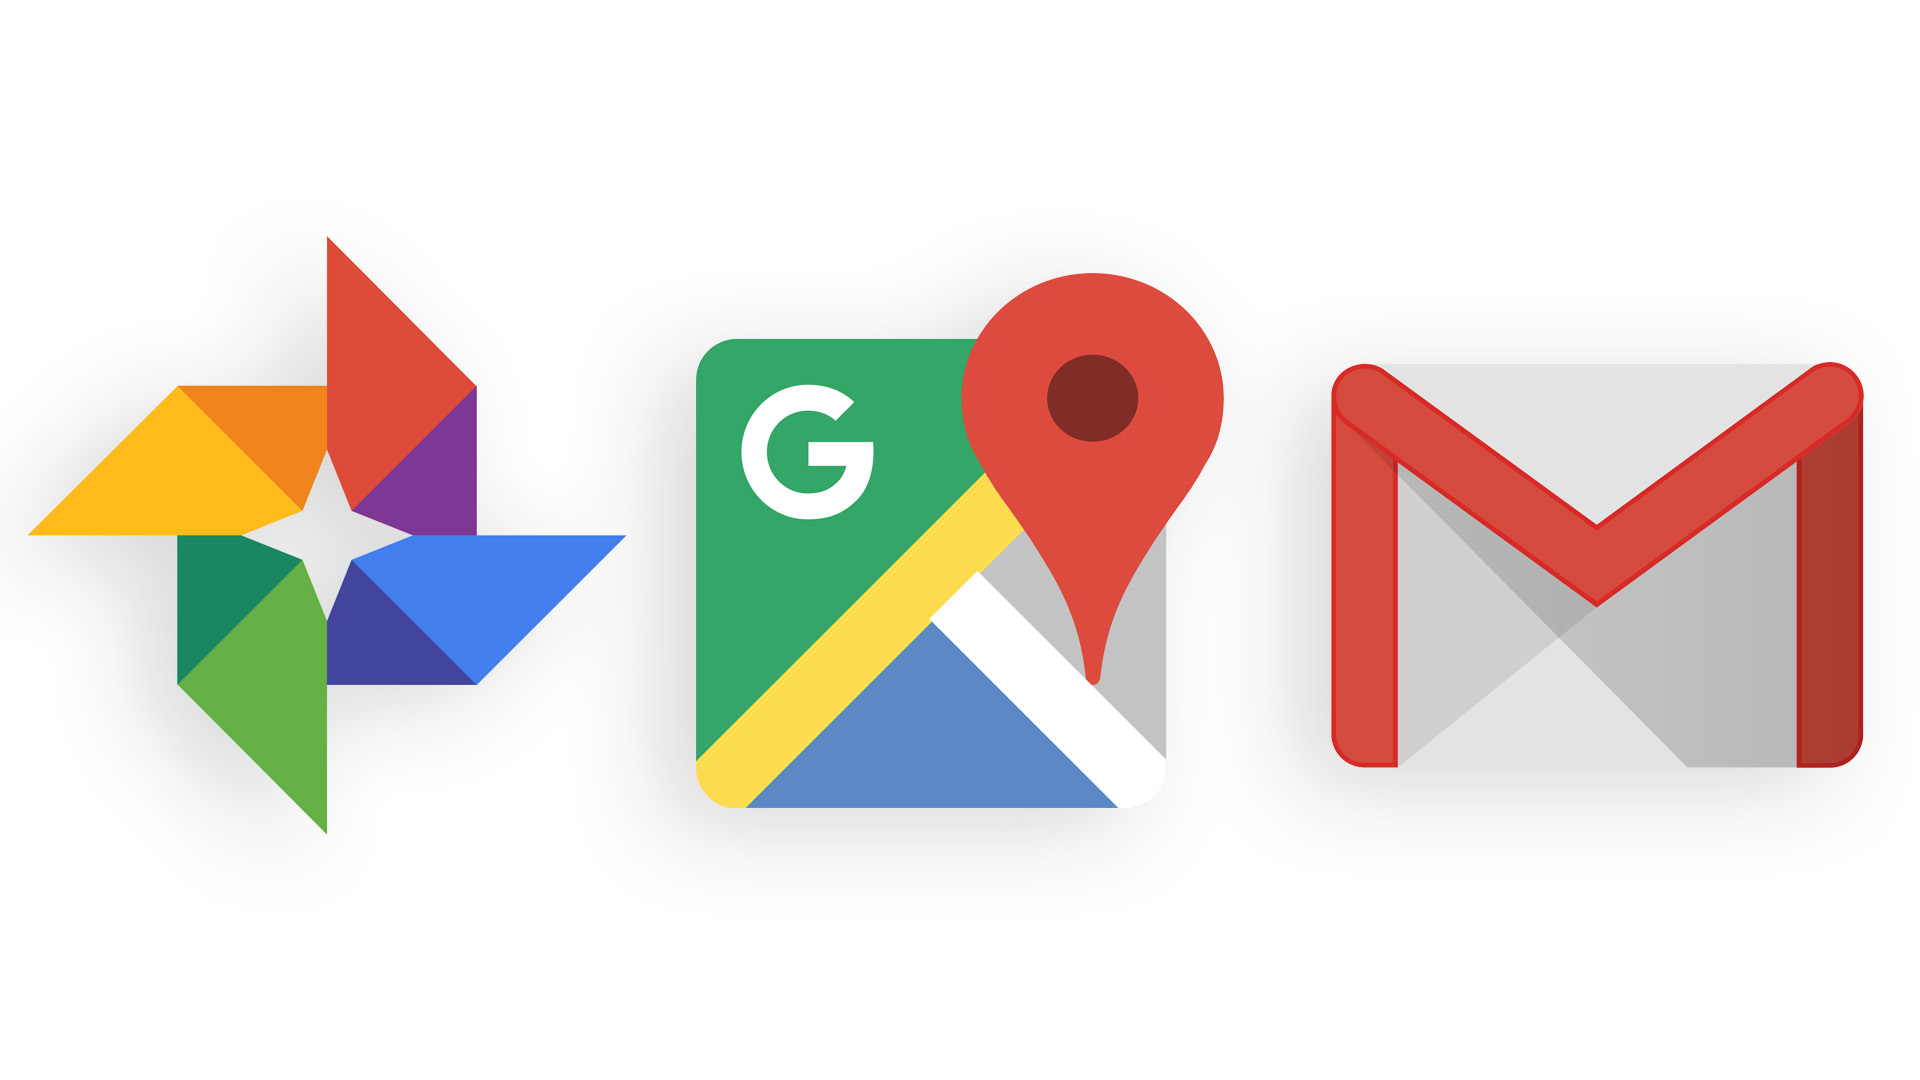 Google Maps, Mail and Photos: top tips to make you a mobile ... on ios google maps, maps google maps, play google maps, angry birds google maps, gps google maps, firefox google maps, instagram google maps, android google maps, iphone google maps, skype google maps, earth google maps, search google maps, navigation google maps, live google maps,